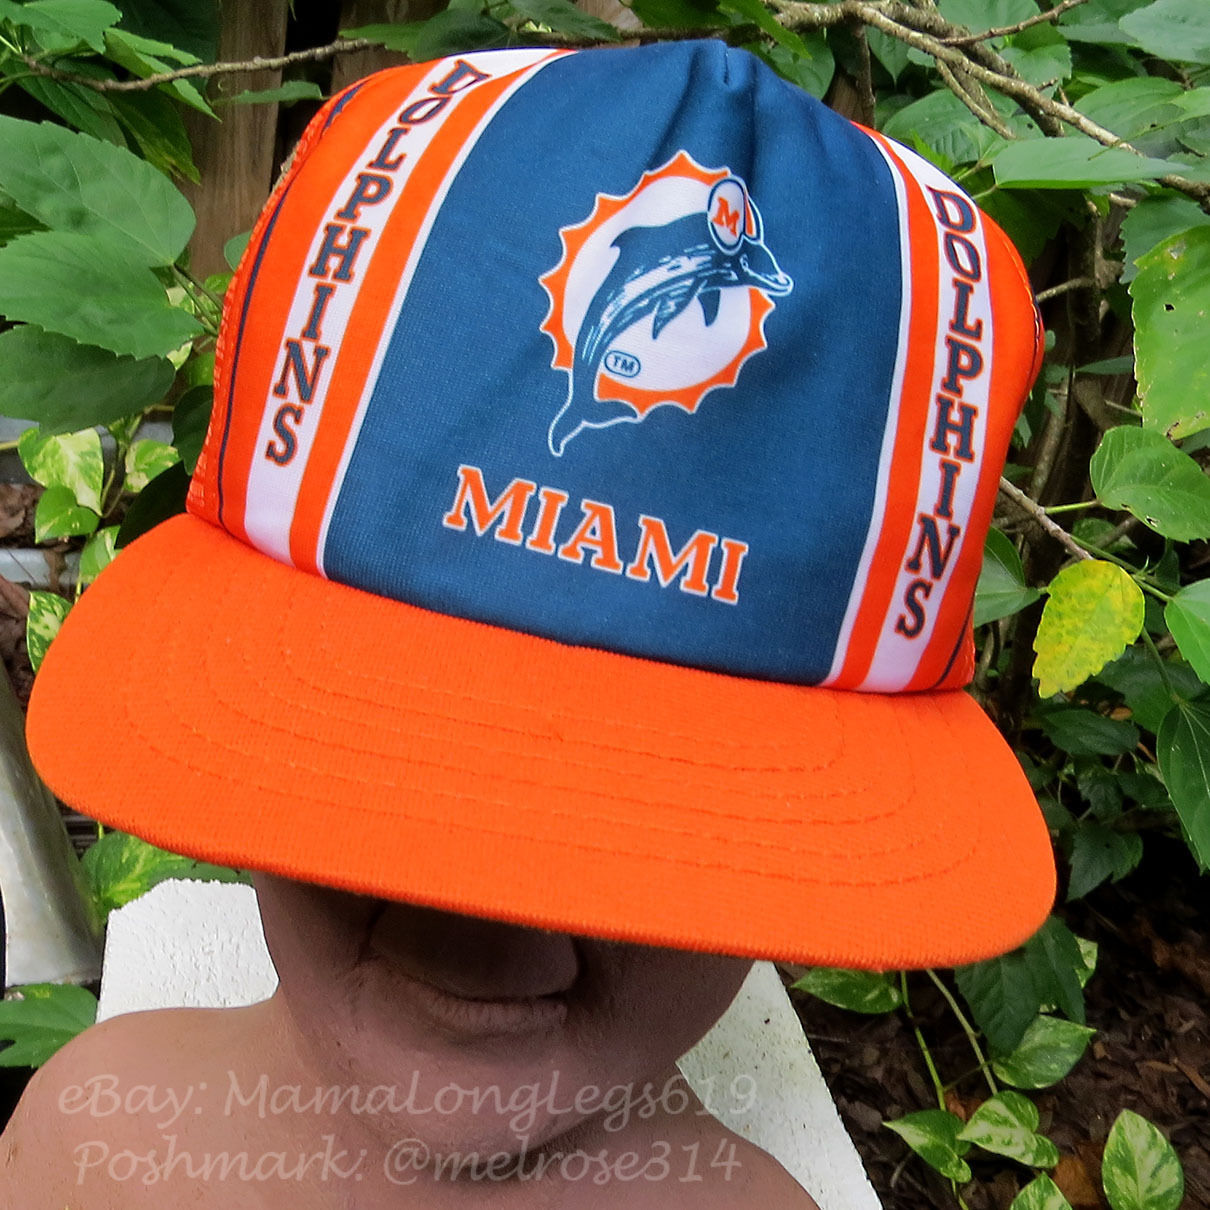 57. 57. Previous. Vintage NFL Distressed 1970s Miami Dolphins Mesh Snapback  Trucker Hat New Era b39917175e55